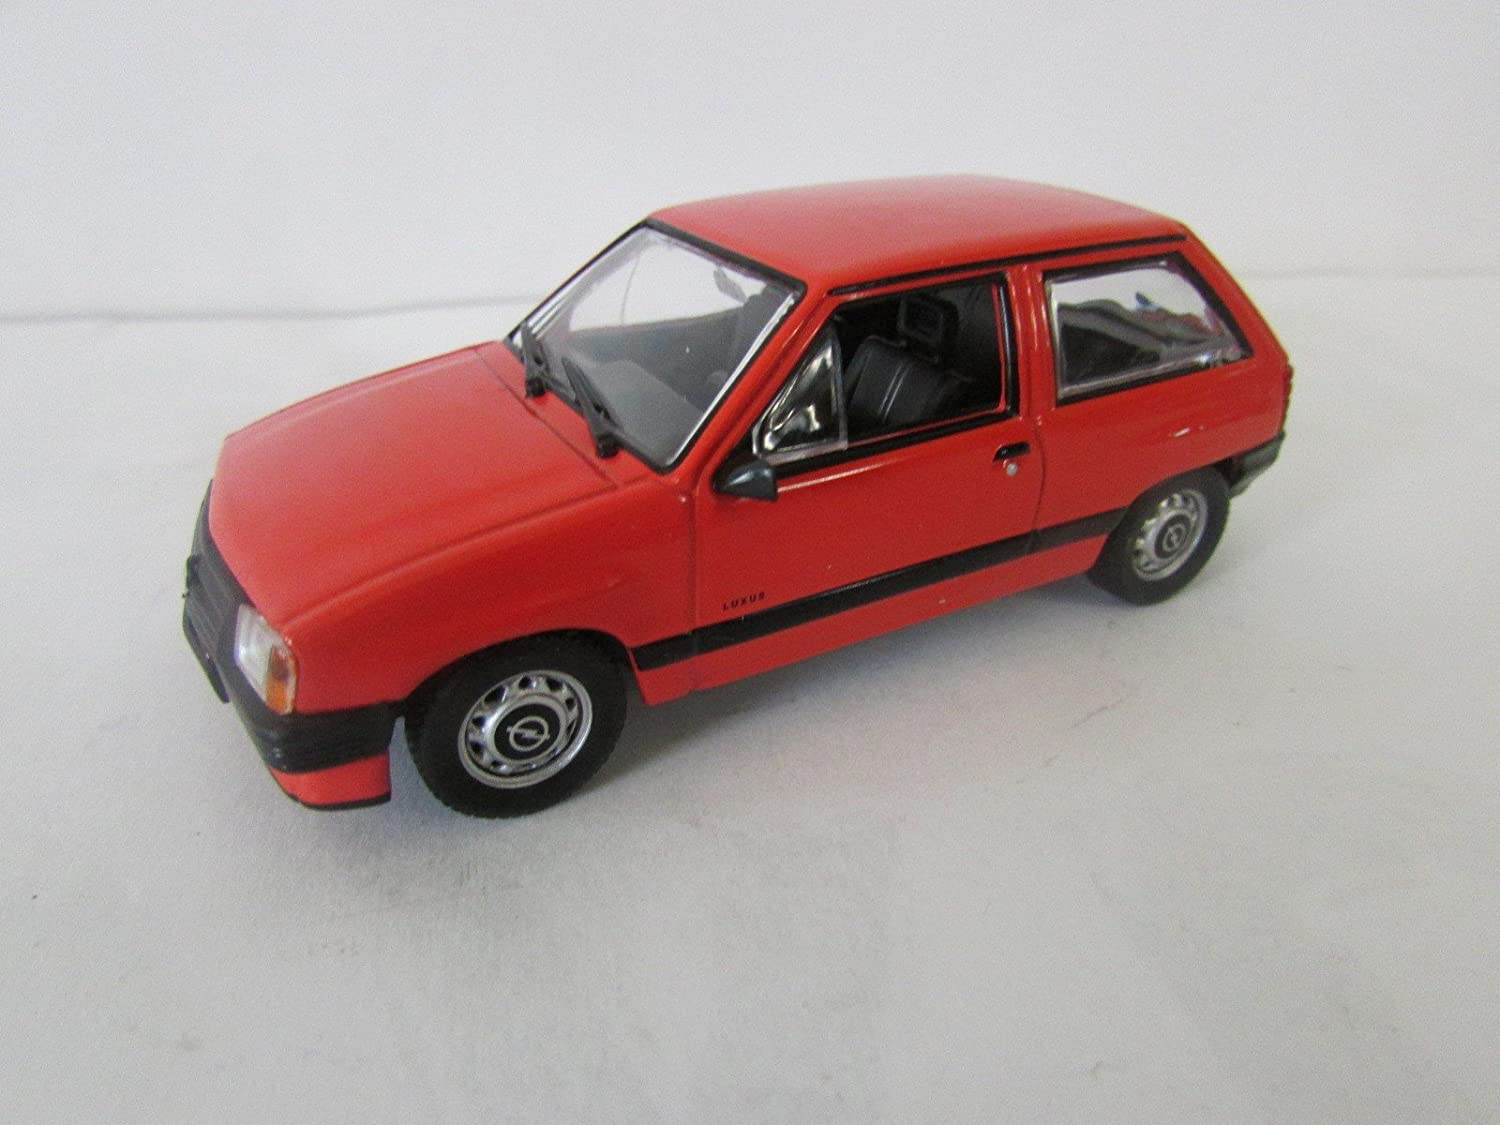 Opel Corsa (2-drzwiowa) voiture de collection à léchelle 1:43 rouge -réf 190**: Amazon.es: Juguetes y juegos